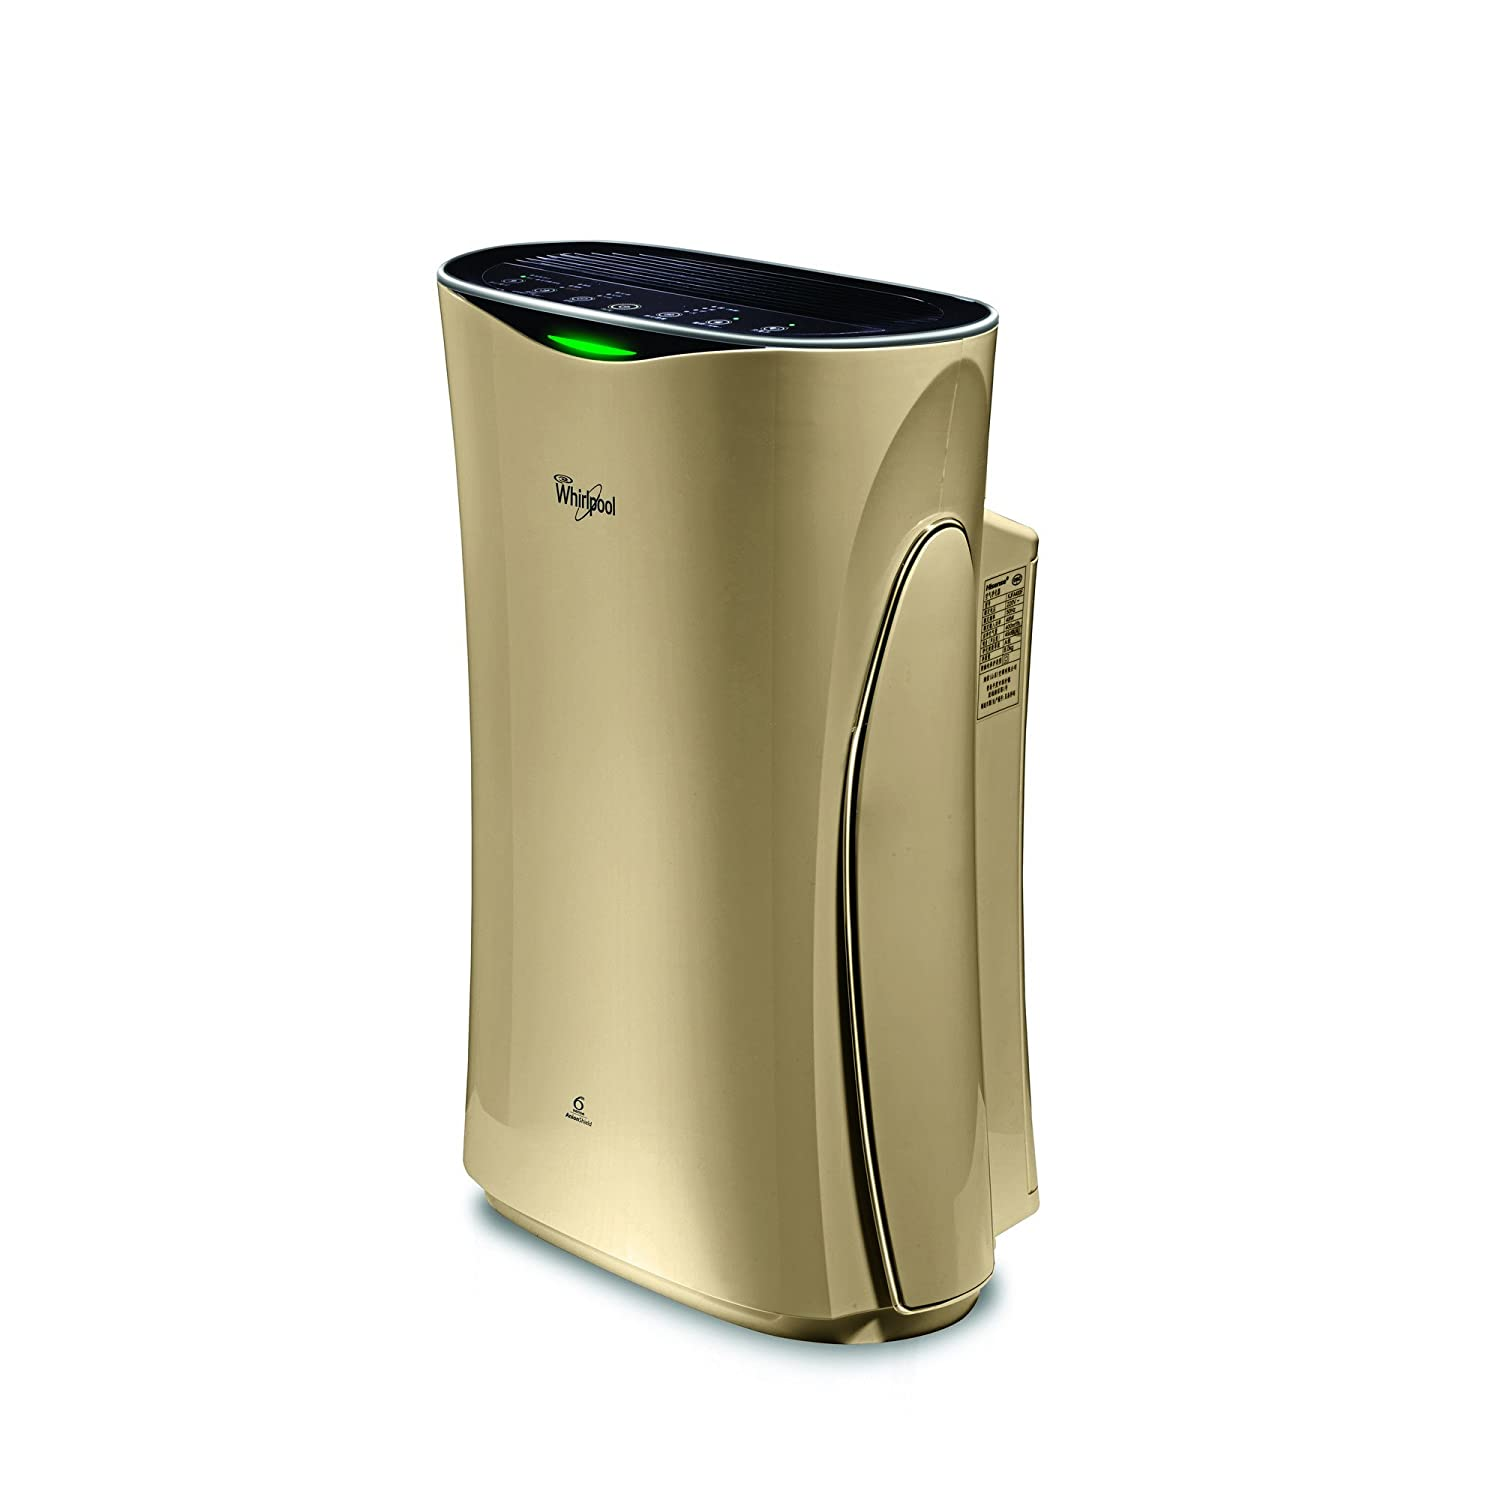 Purafresh W440 Air Purifier (Champagne Gold)